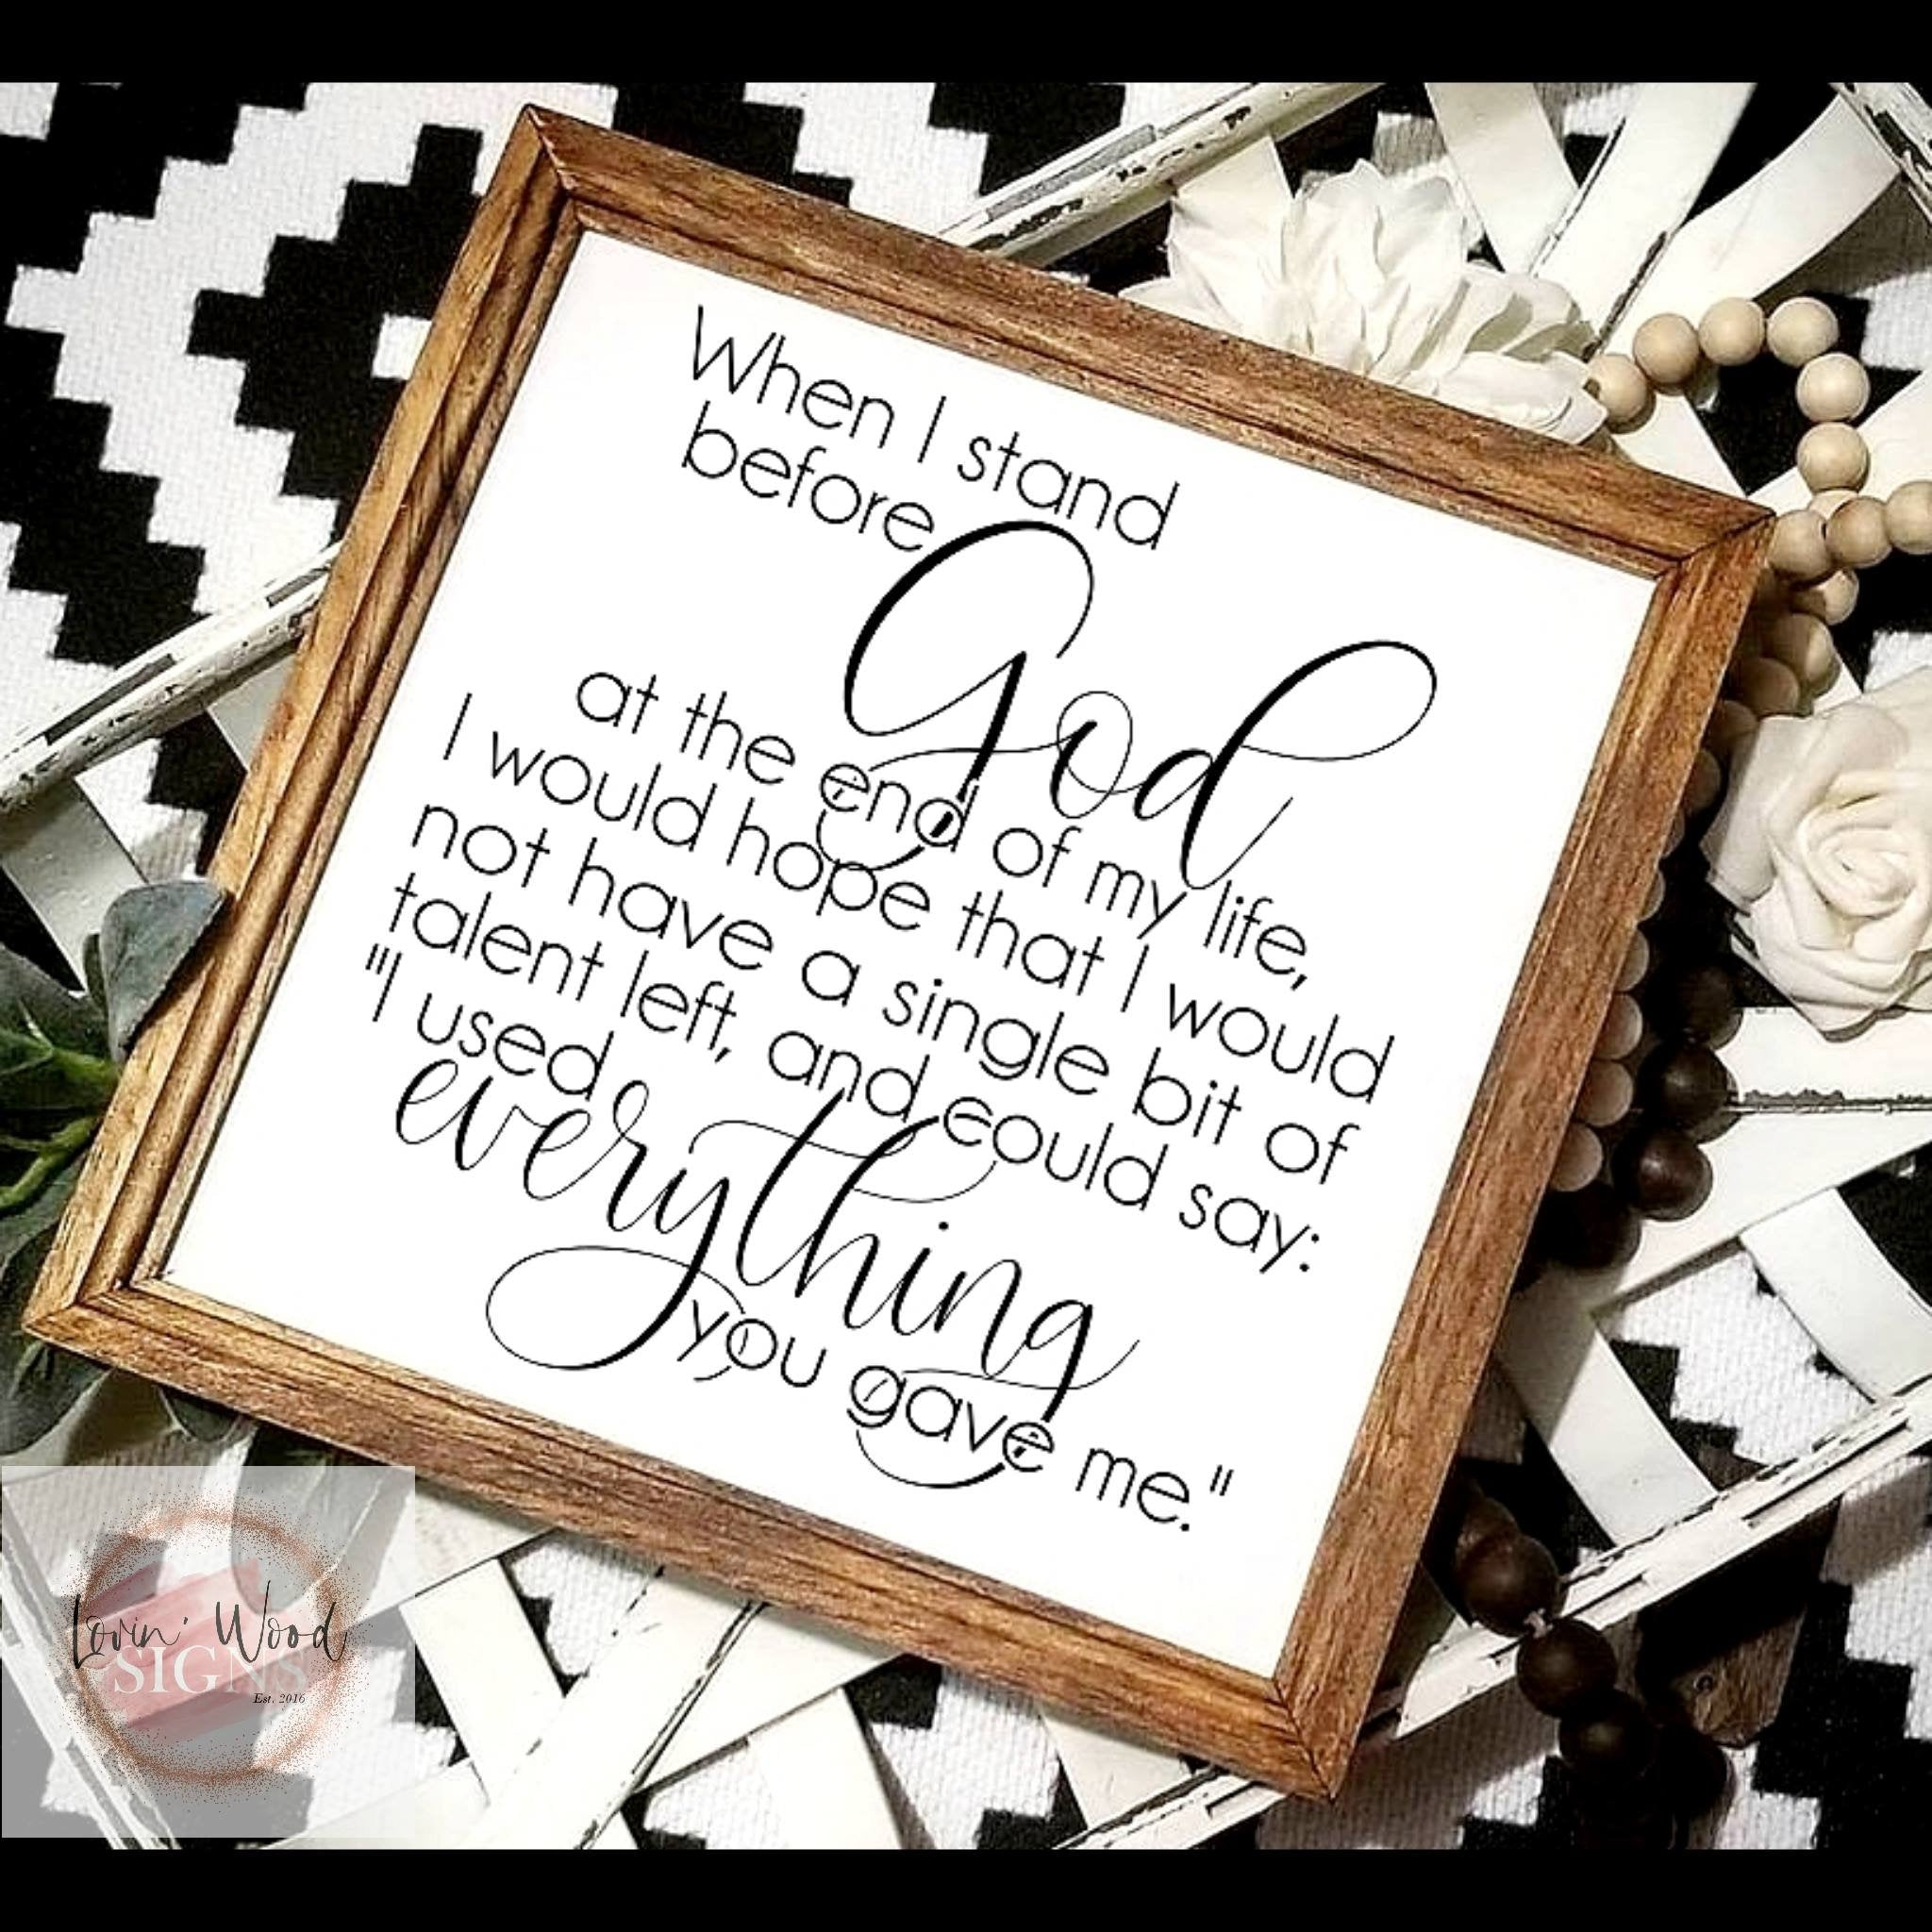 When I stand before God, I used everything you gave me, religious wall art, living room decor, religious decor, Prayer sign, farmhouse sign